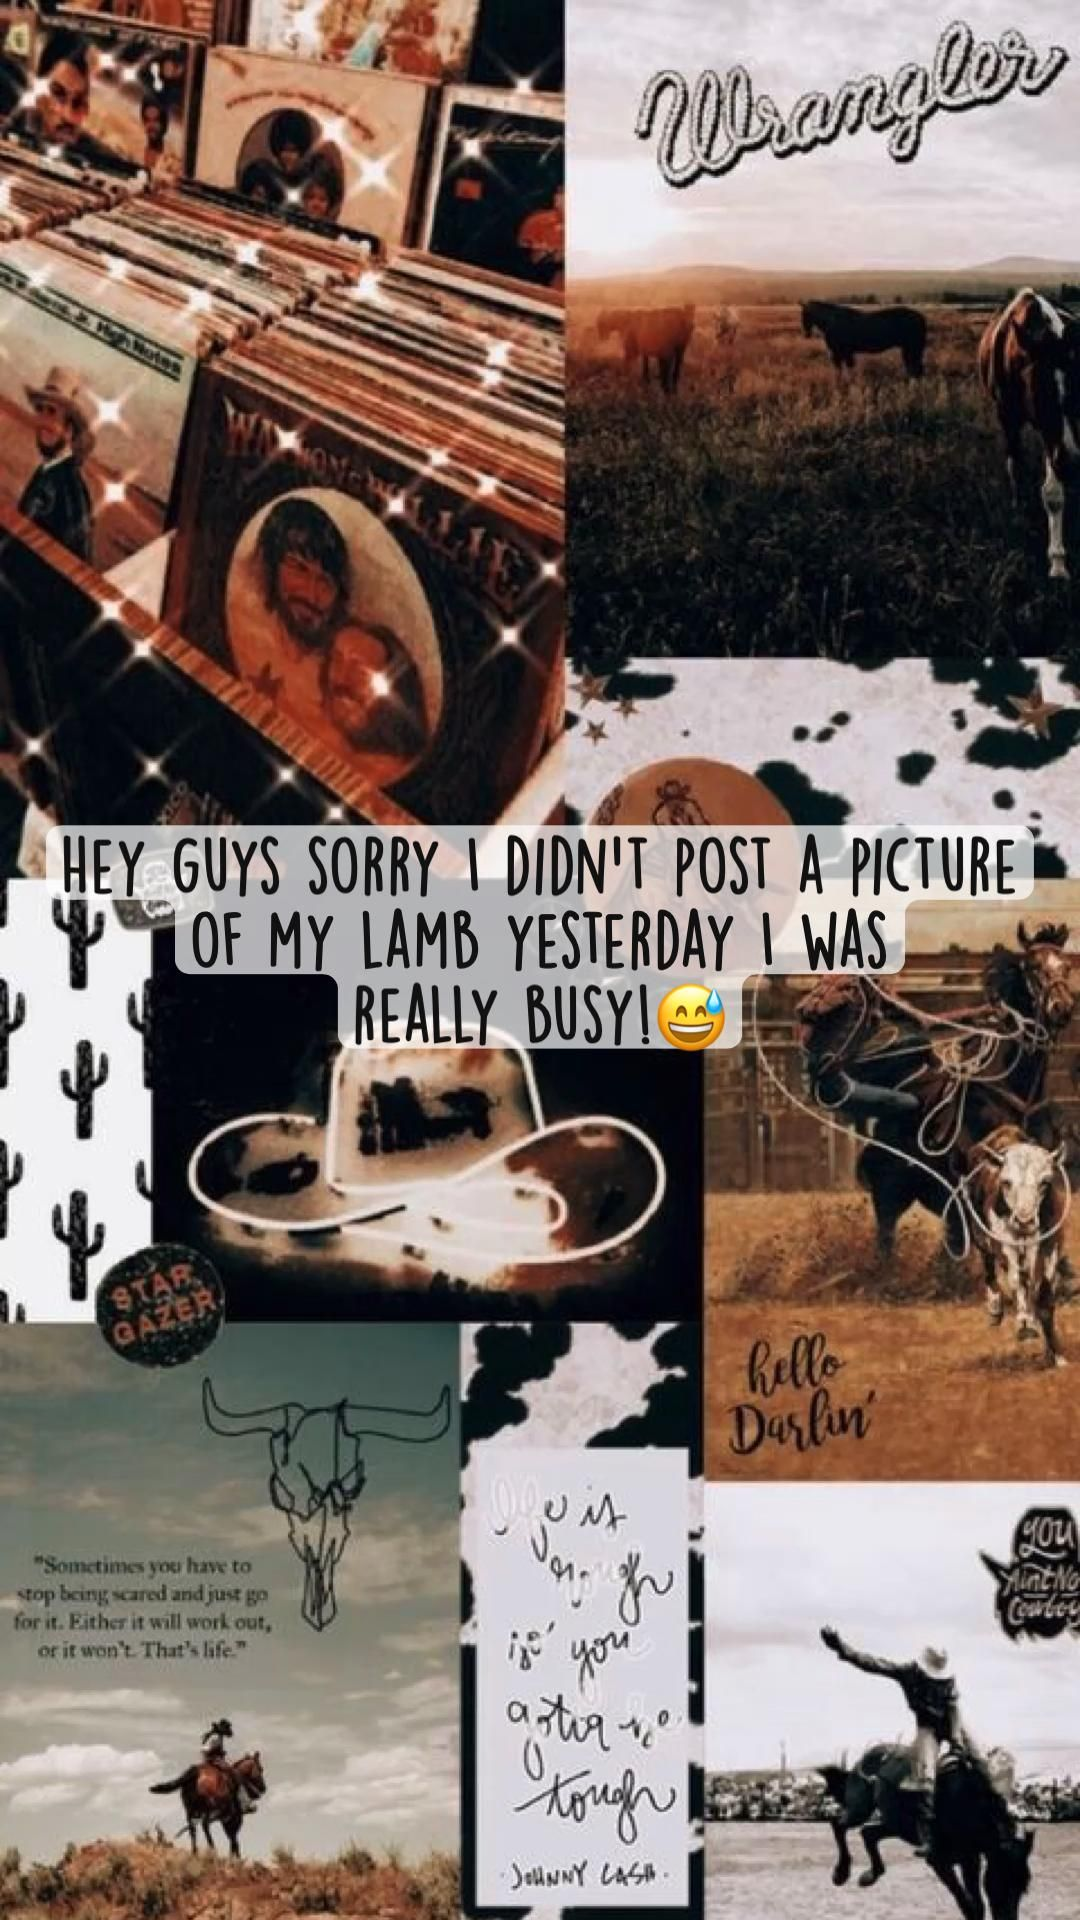 Hey guys sorry I didn't post a picture  of my lamb yesterday I was  really busy!😅